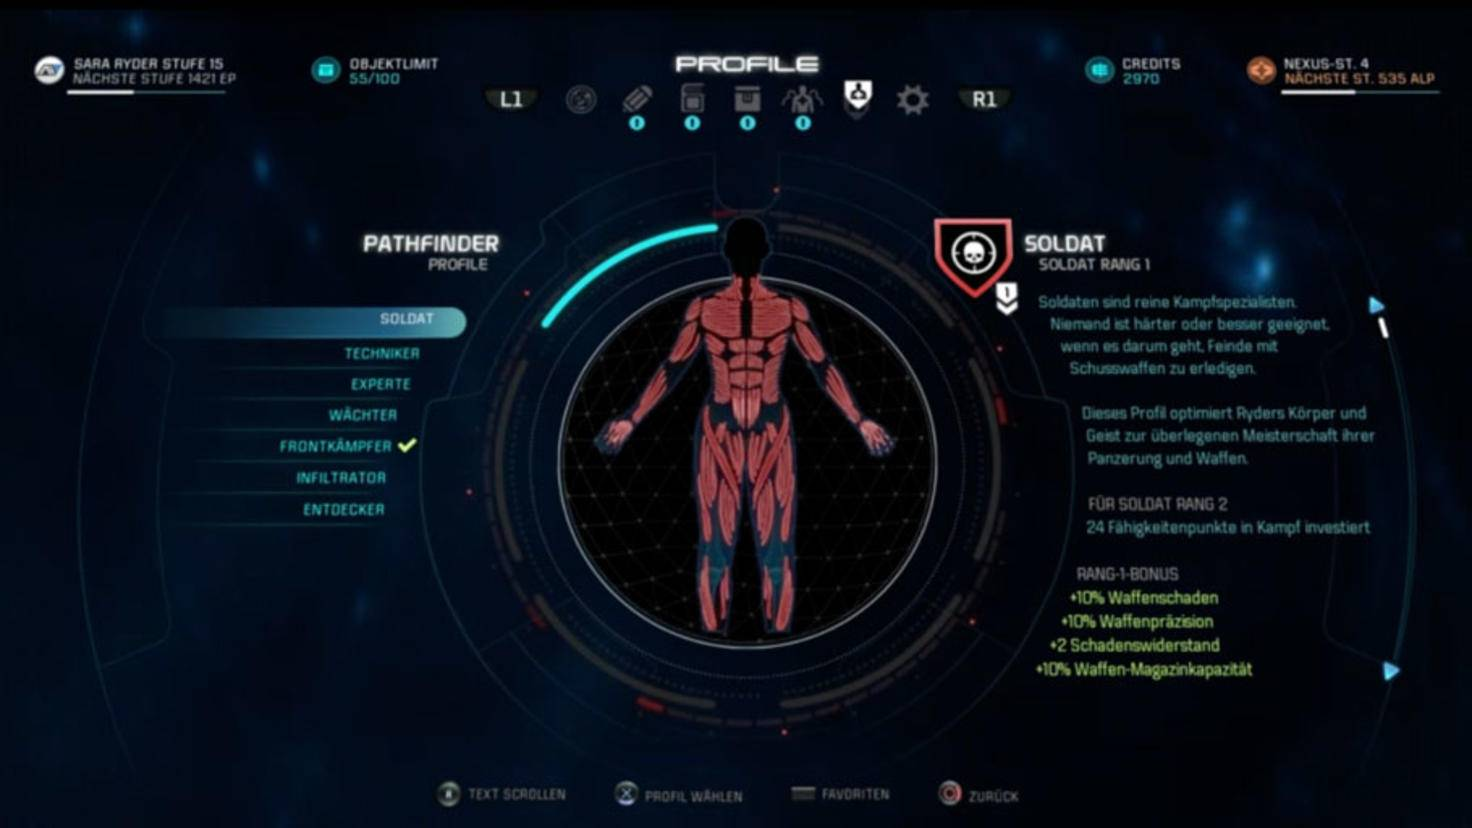 Mass-Effect-Andromeda-Profile